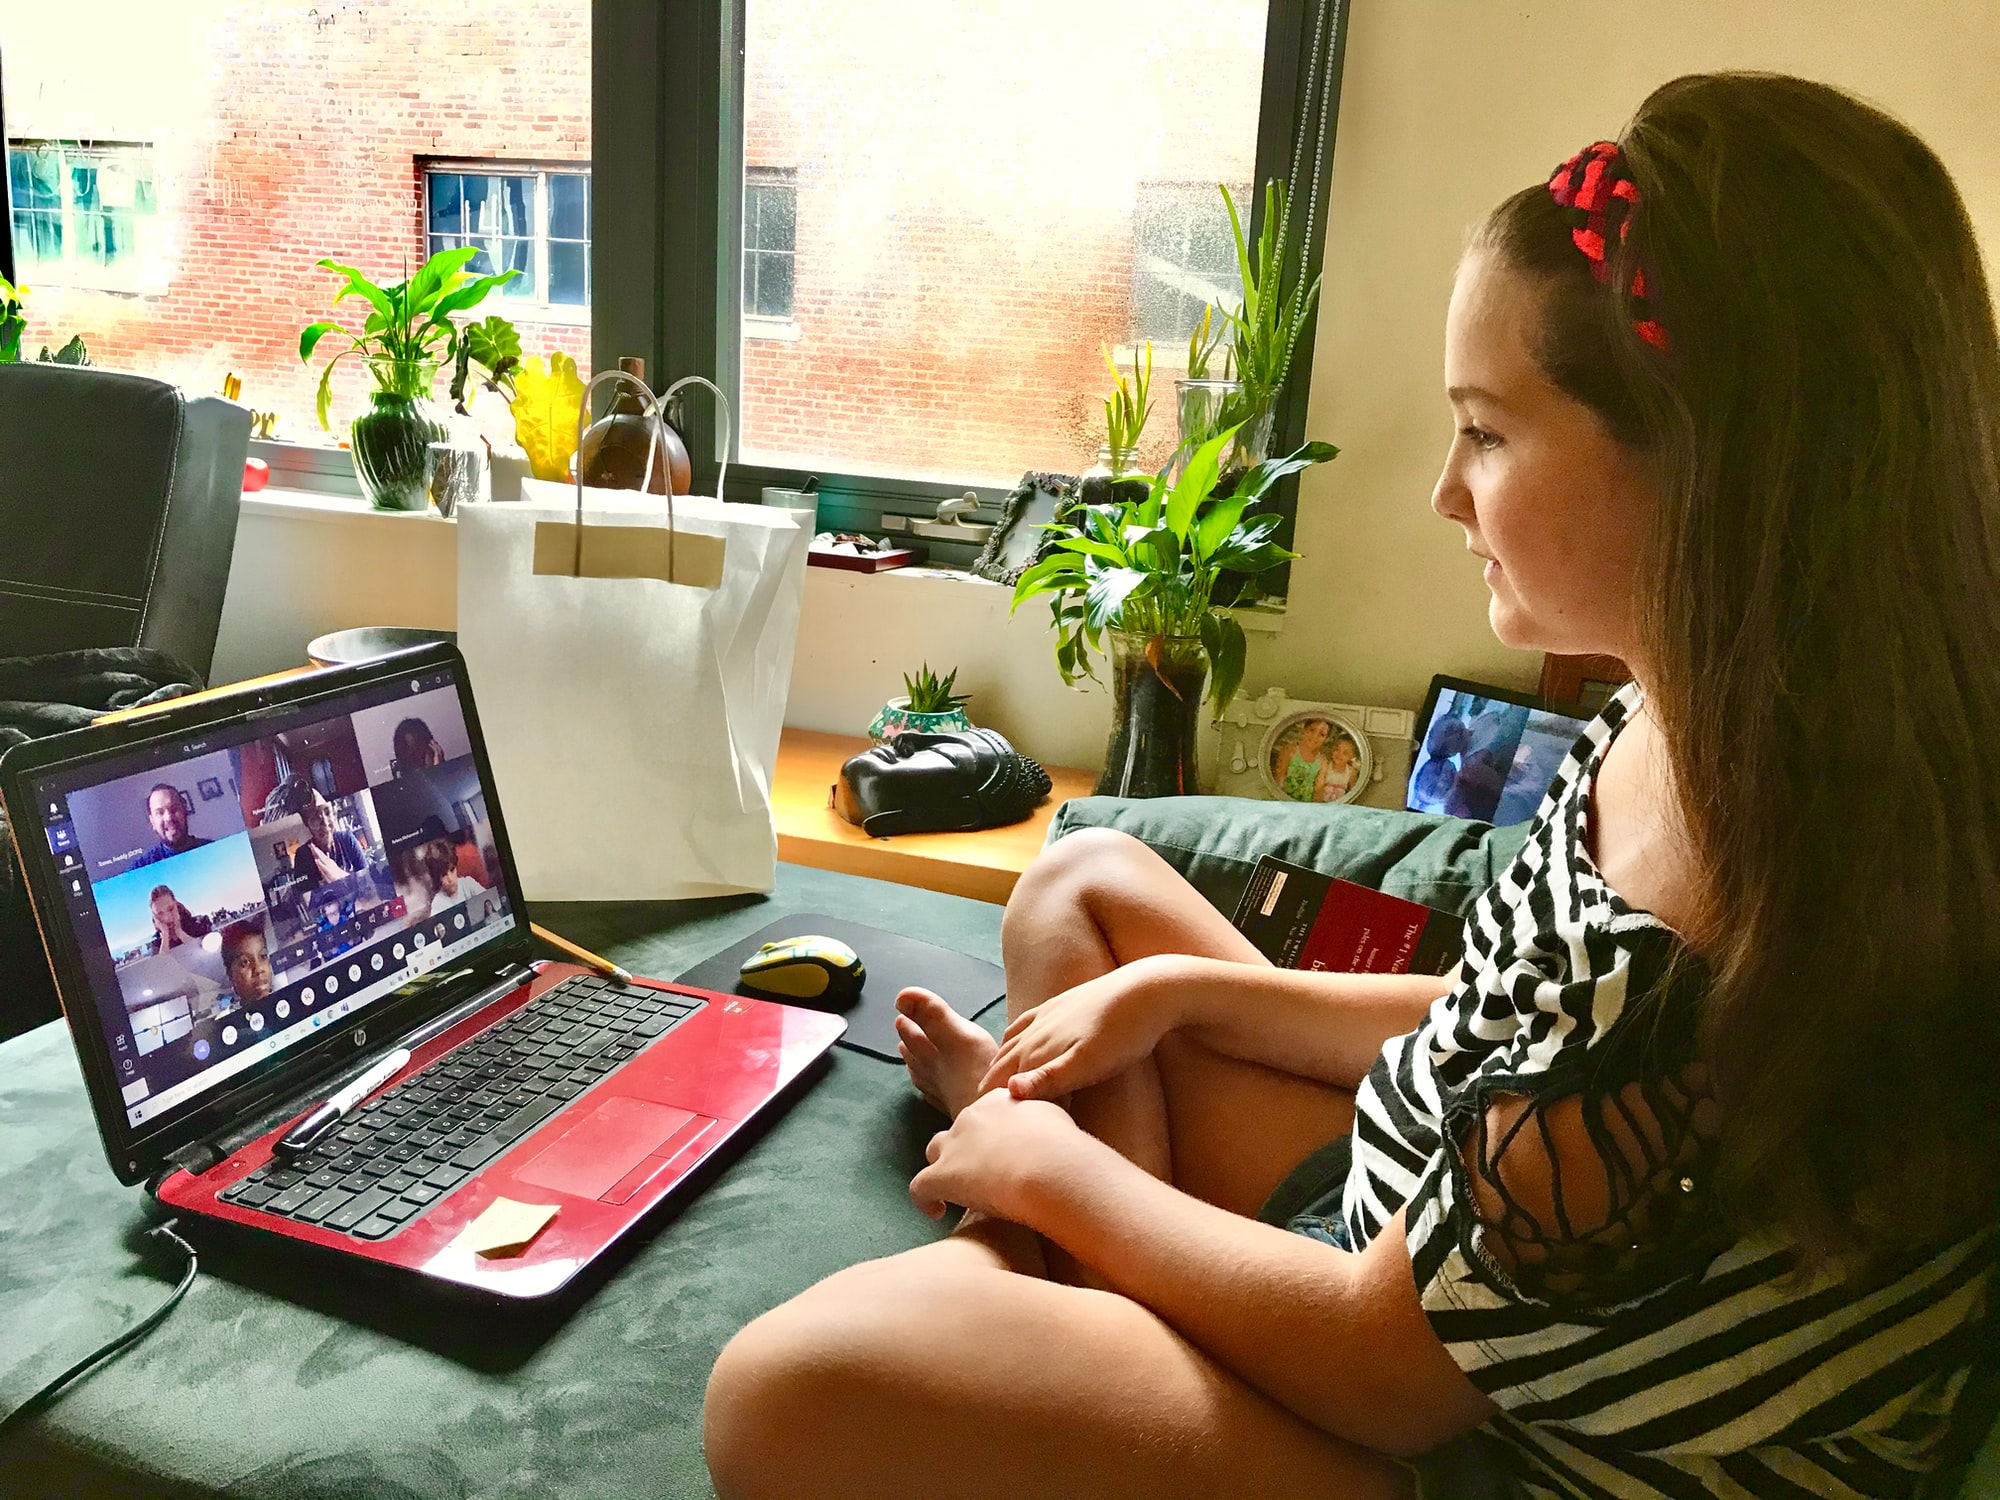 Taking on the obstacles of distance learning